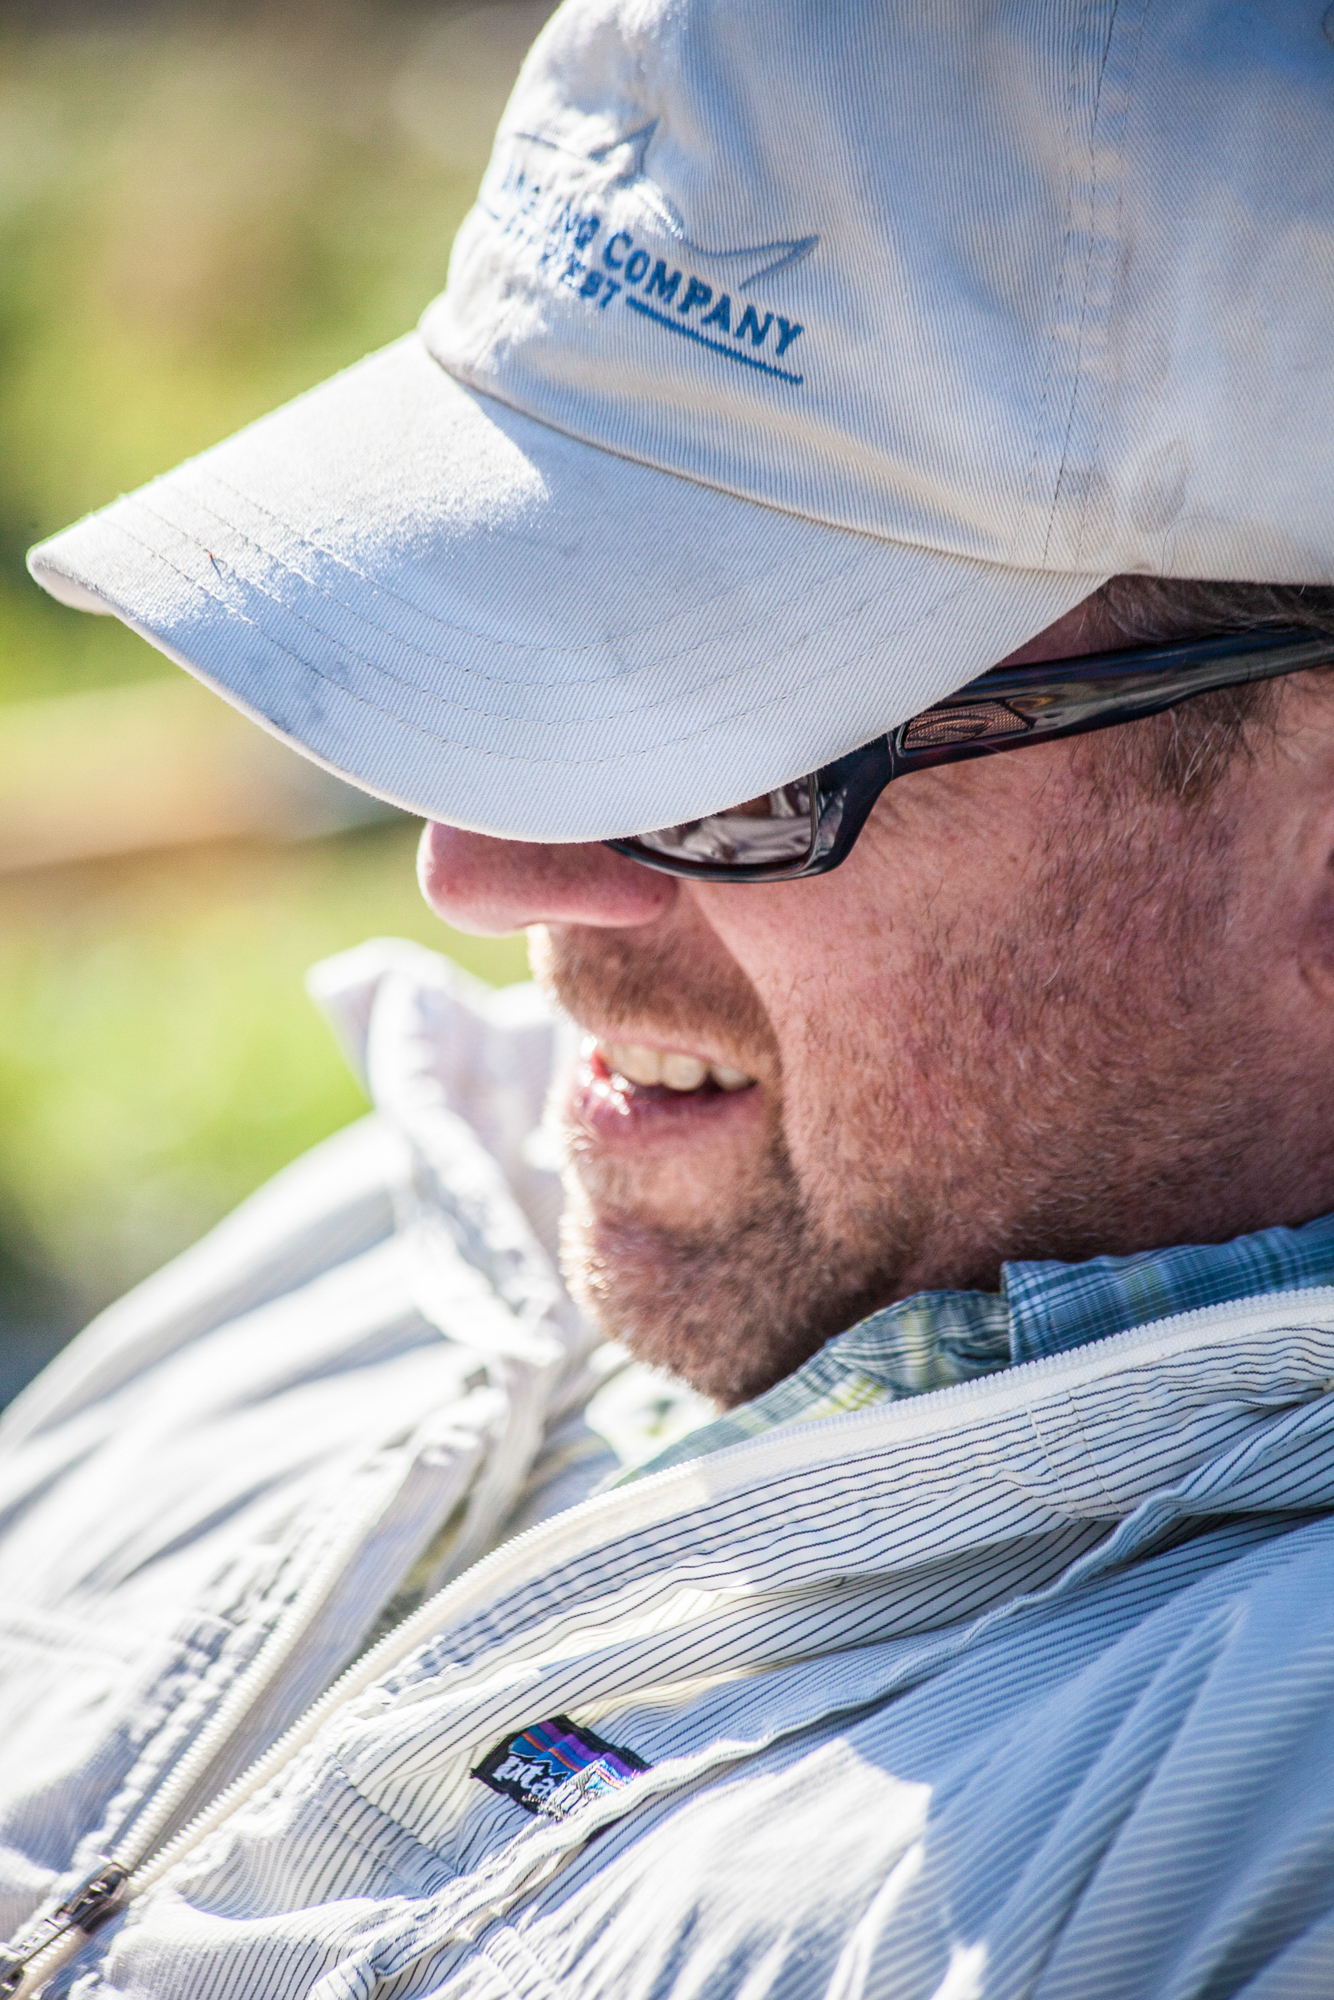 John Arnold, co-owner of Headhunters, enjoys a day in the boat and the glow of a summer sun.